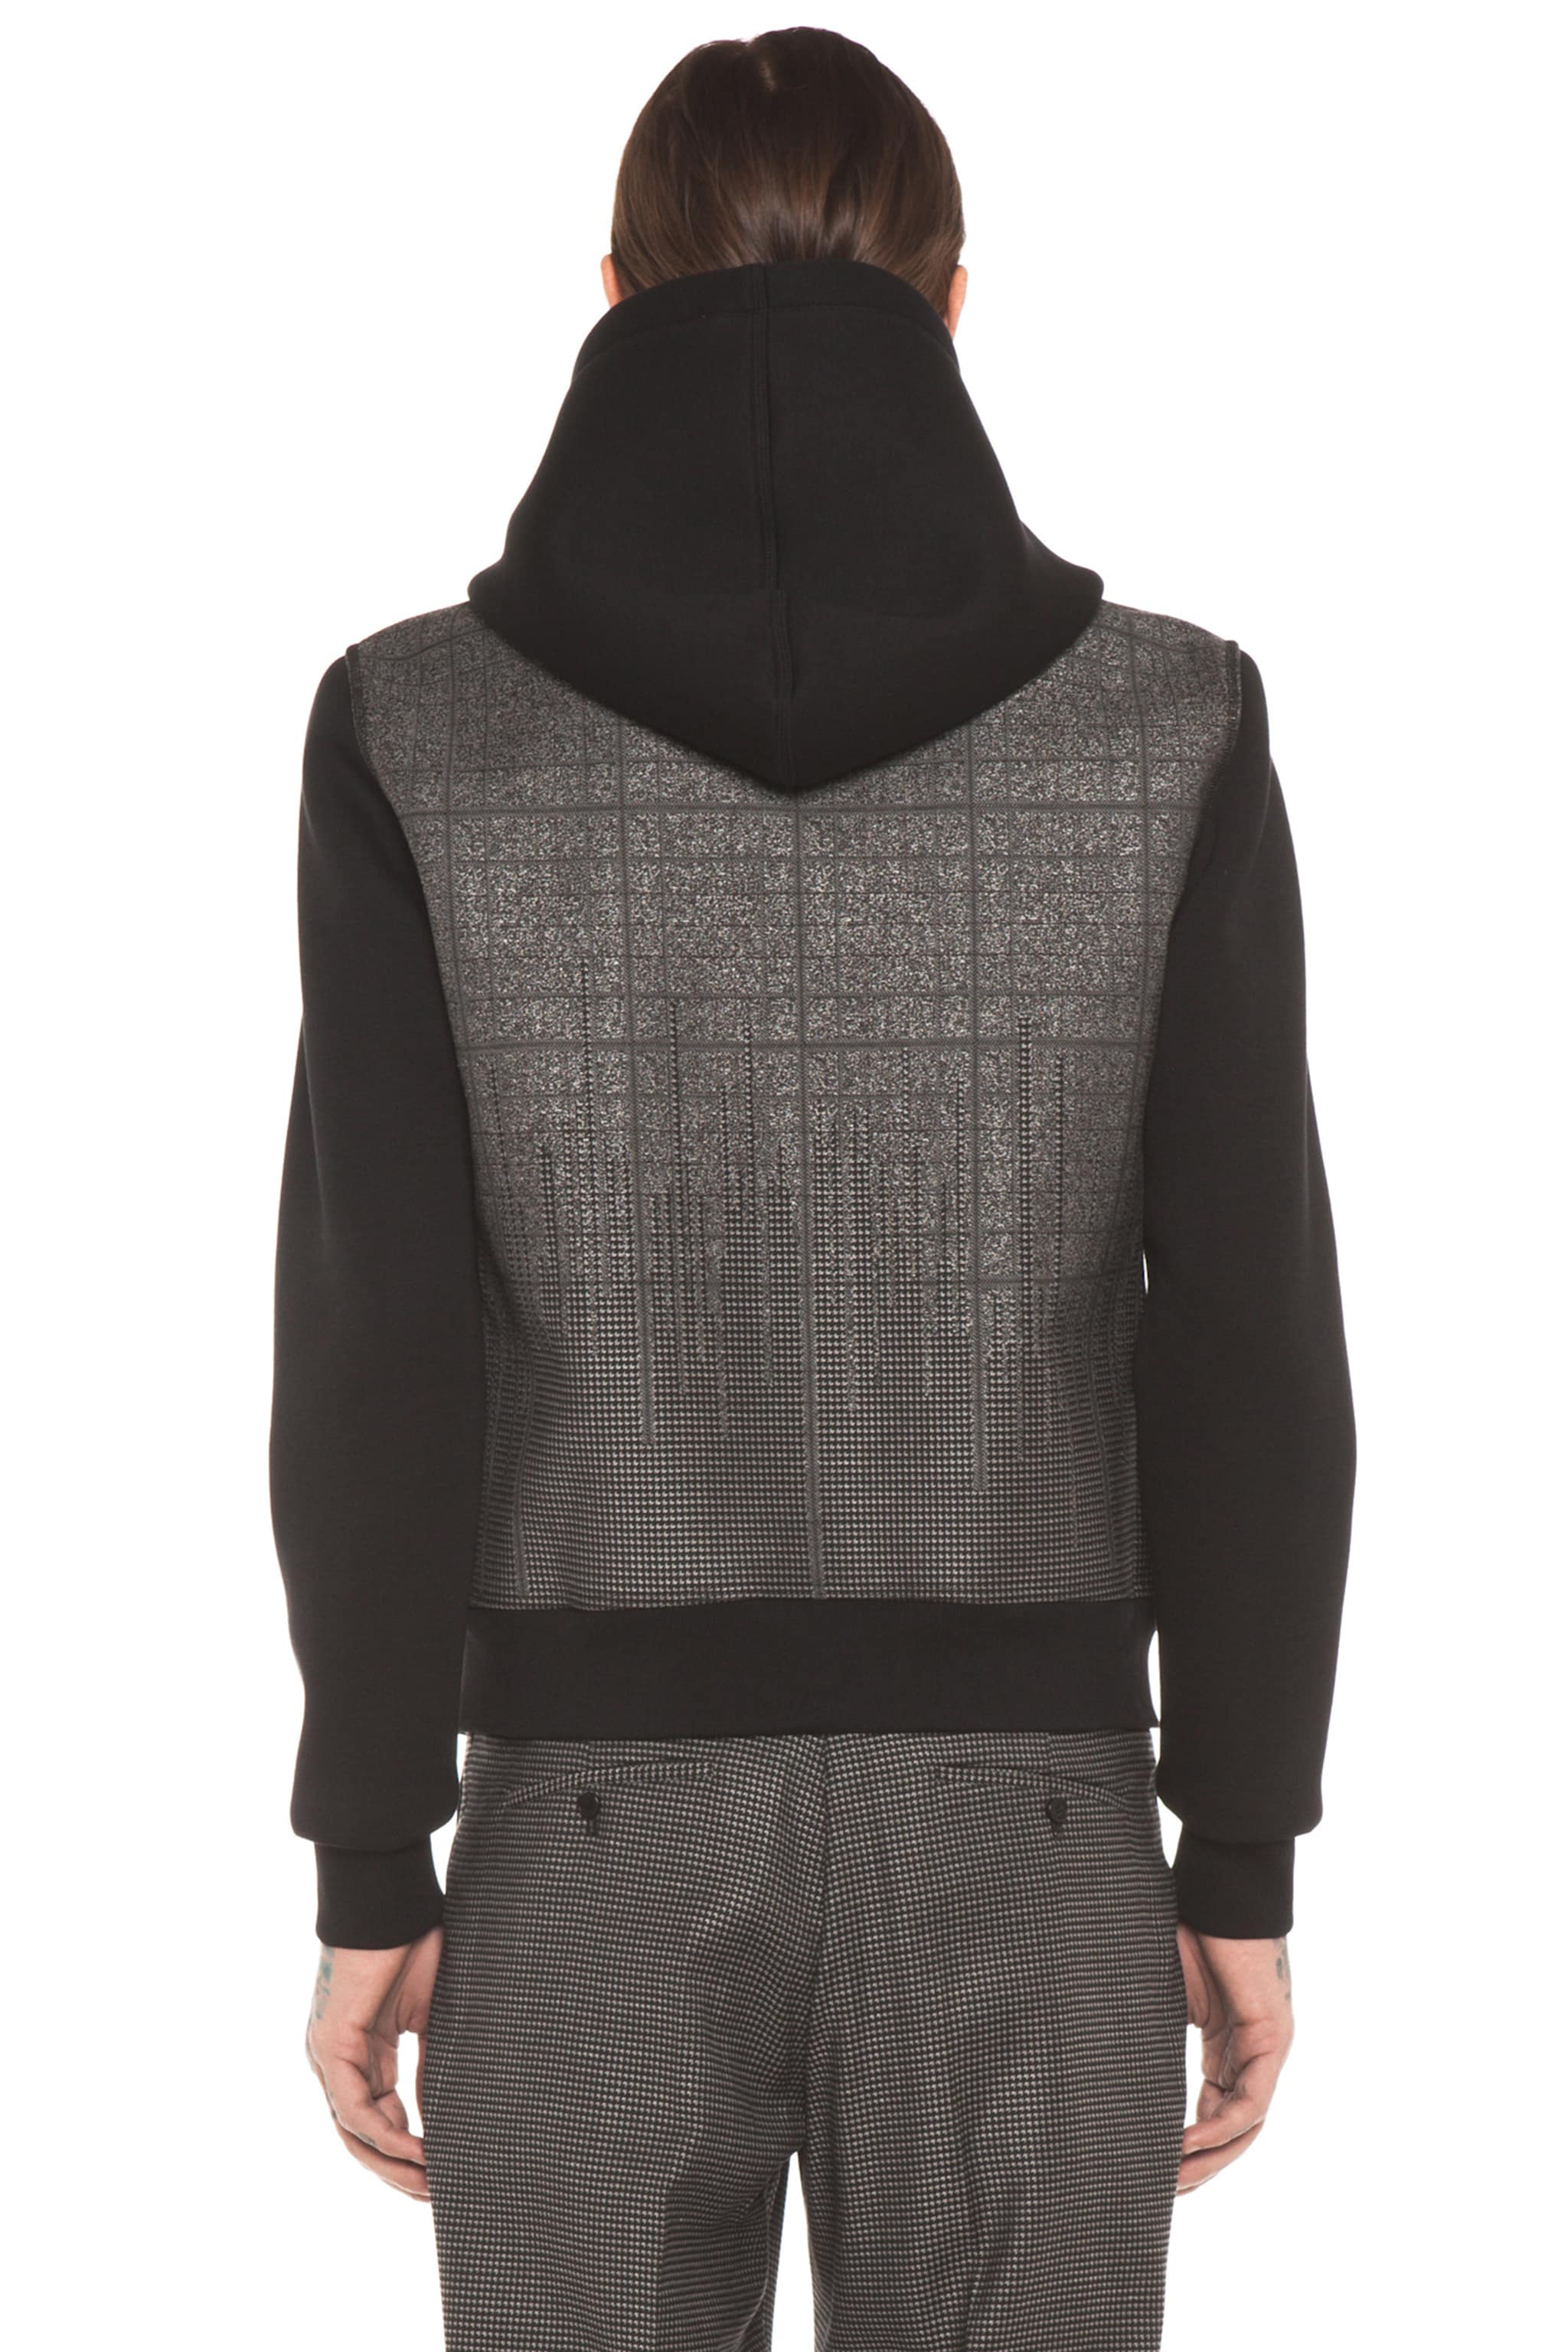 Image 5 of Neil Barrett Patterned Pocket Zip Hoodie in Charcoal